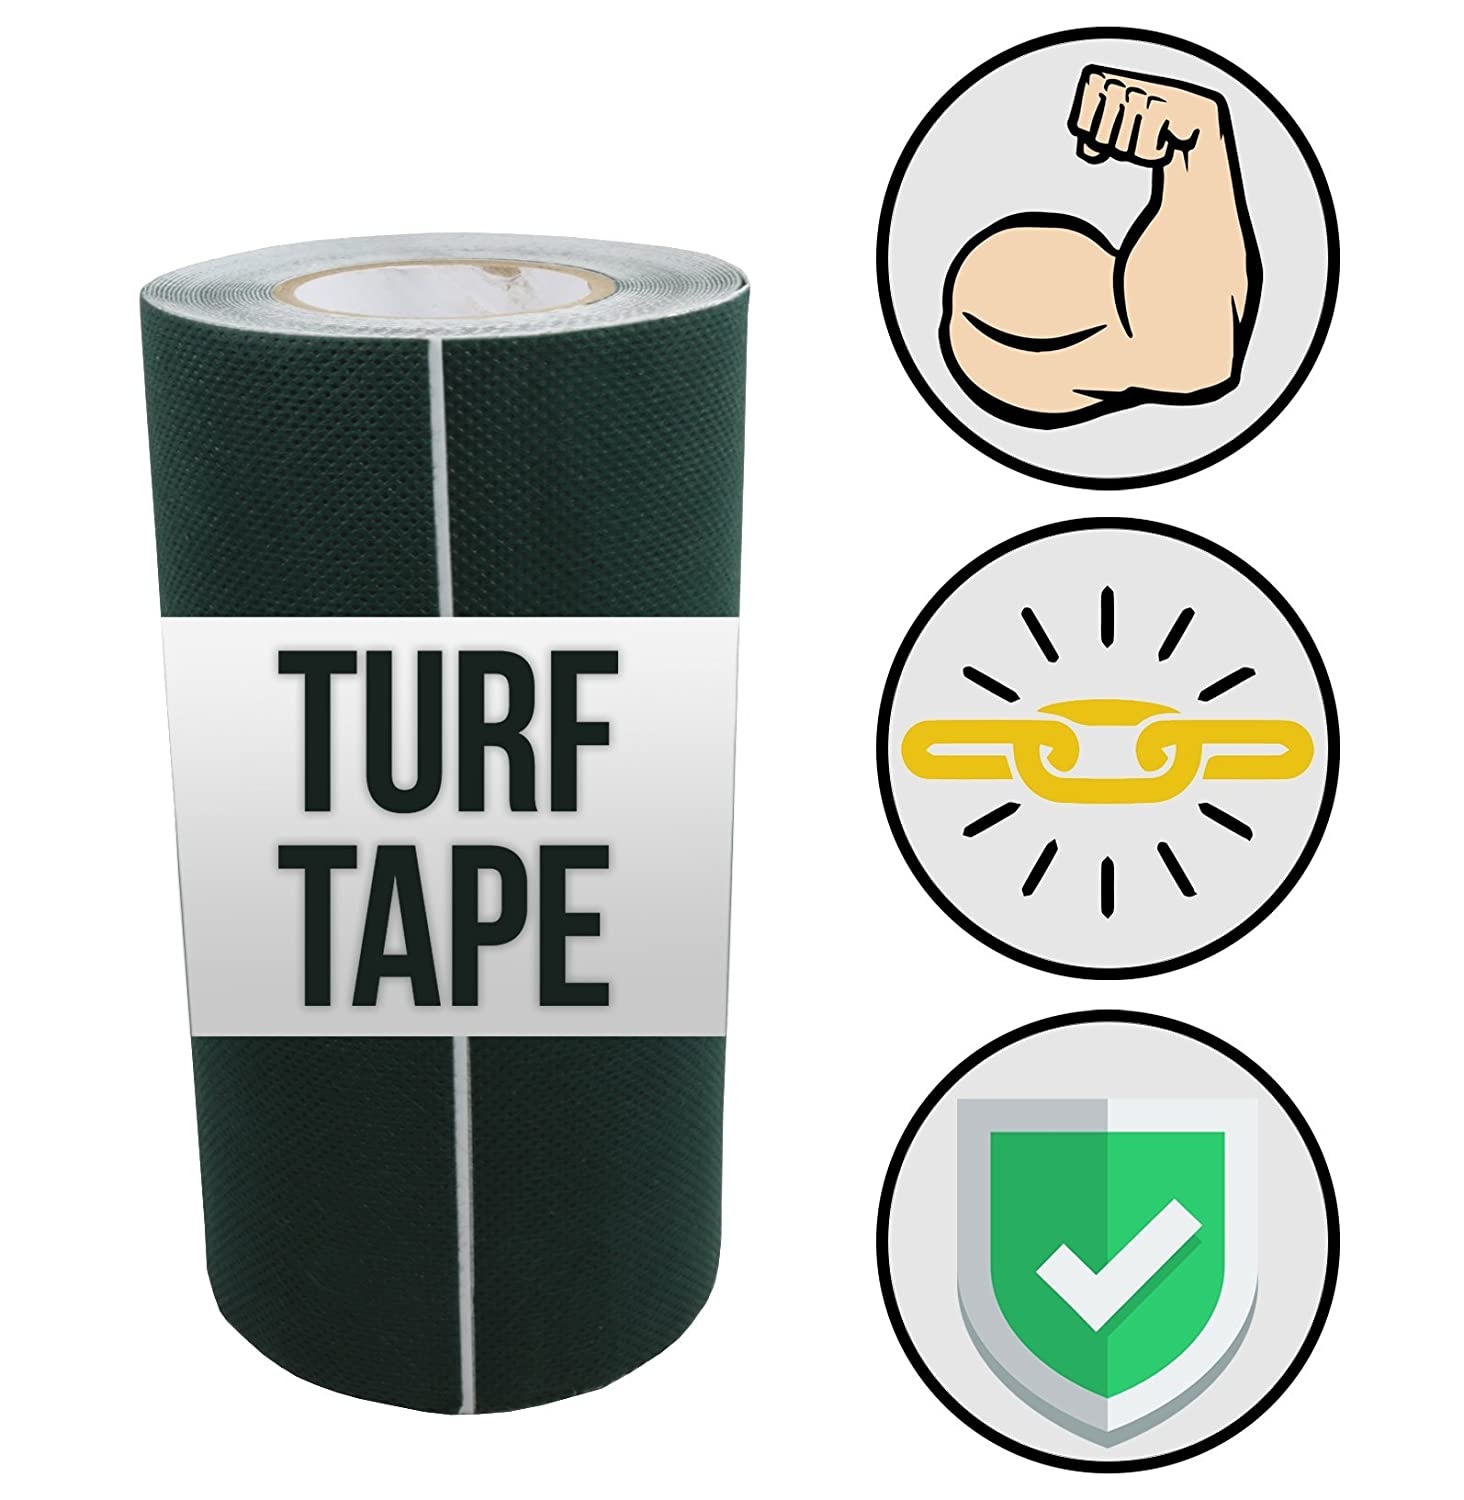 Backyard Accessories Tough Tape – Artificial Grass Seaming Tape – (6 in x 82 ft, Green) – Synthetic Self-Adhesive for Turf, Lawn, Carpet Jointing (6 in x 82 ft, Green)